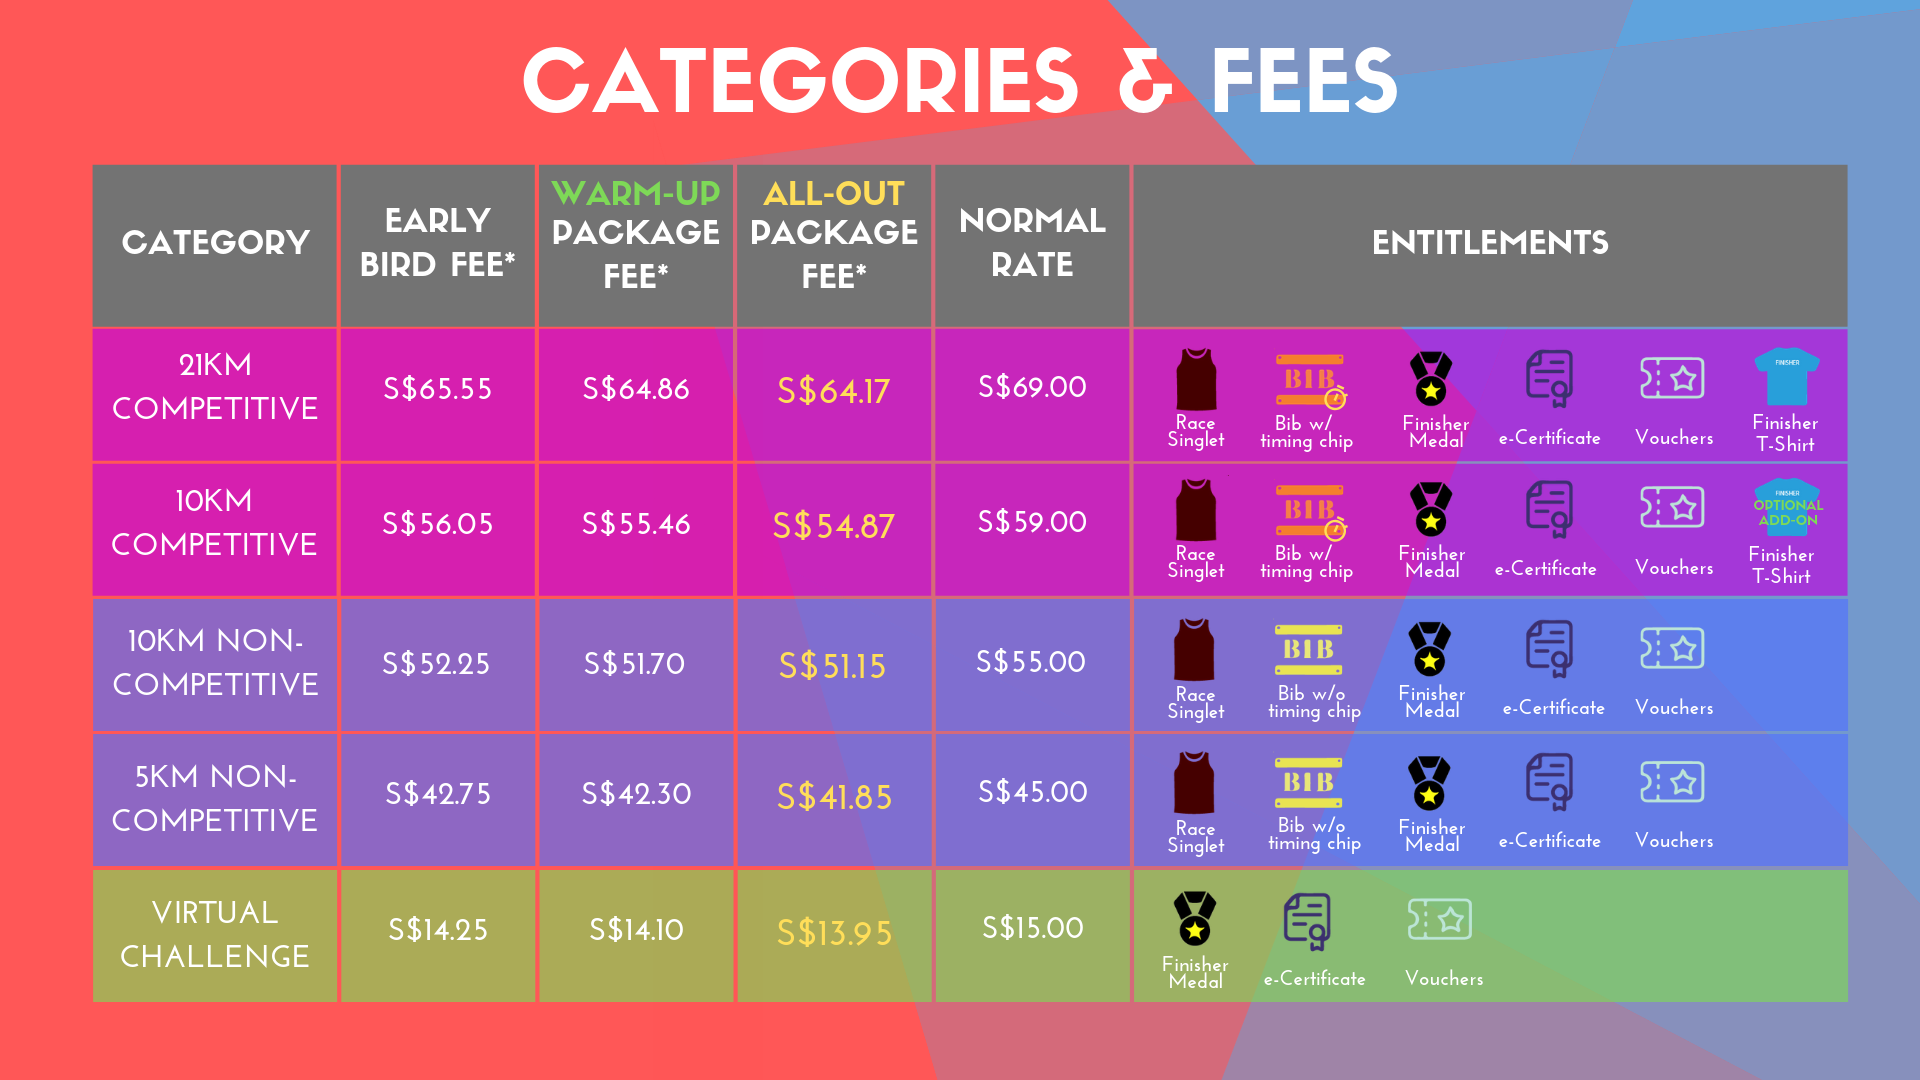 Tps 2019 Categories Fees